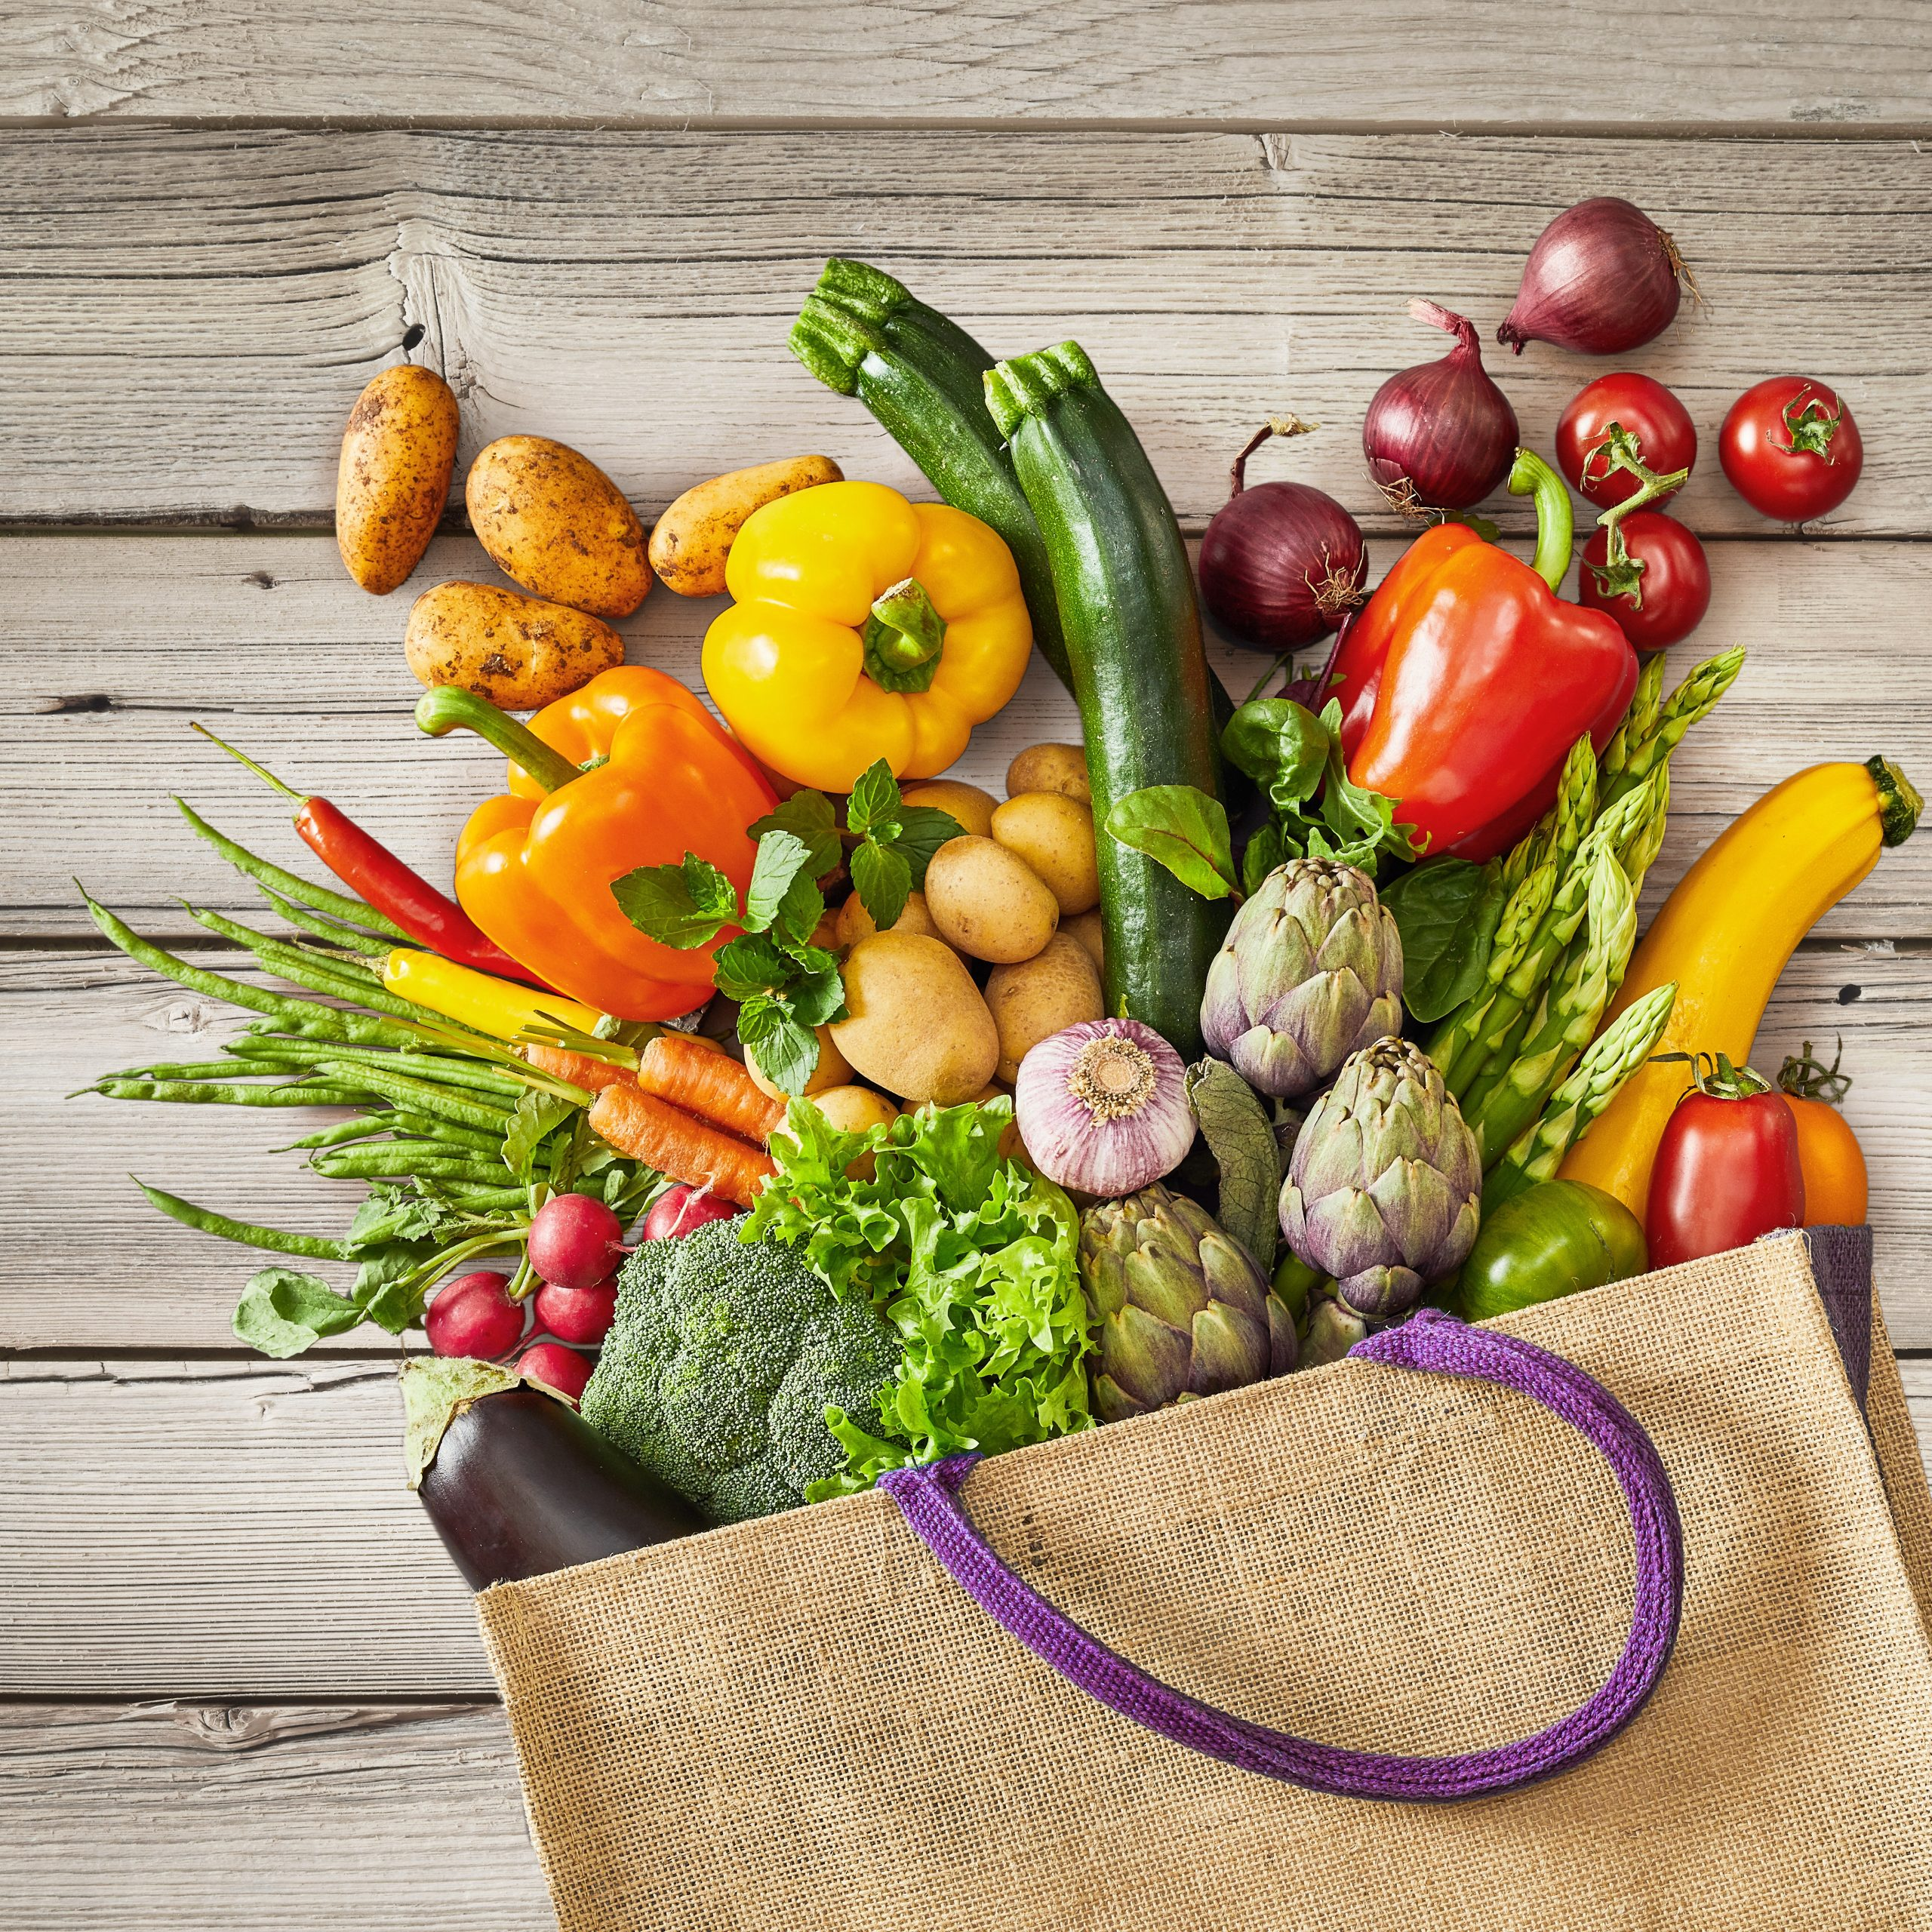 Grocery bag with purple handle that is spilling vegetables while on top of rustic wooden bench background